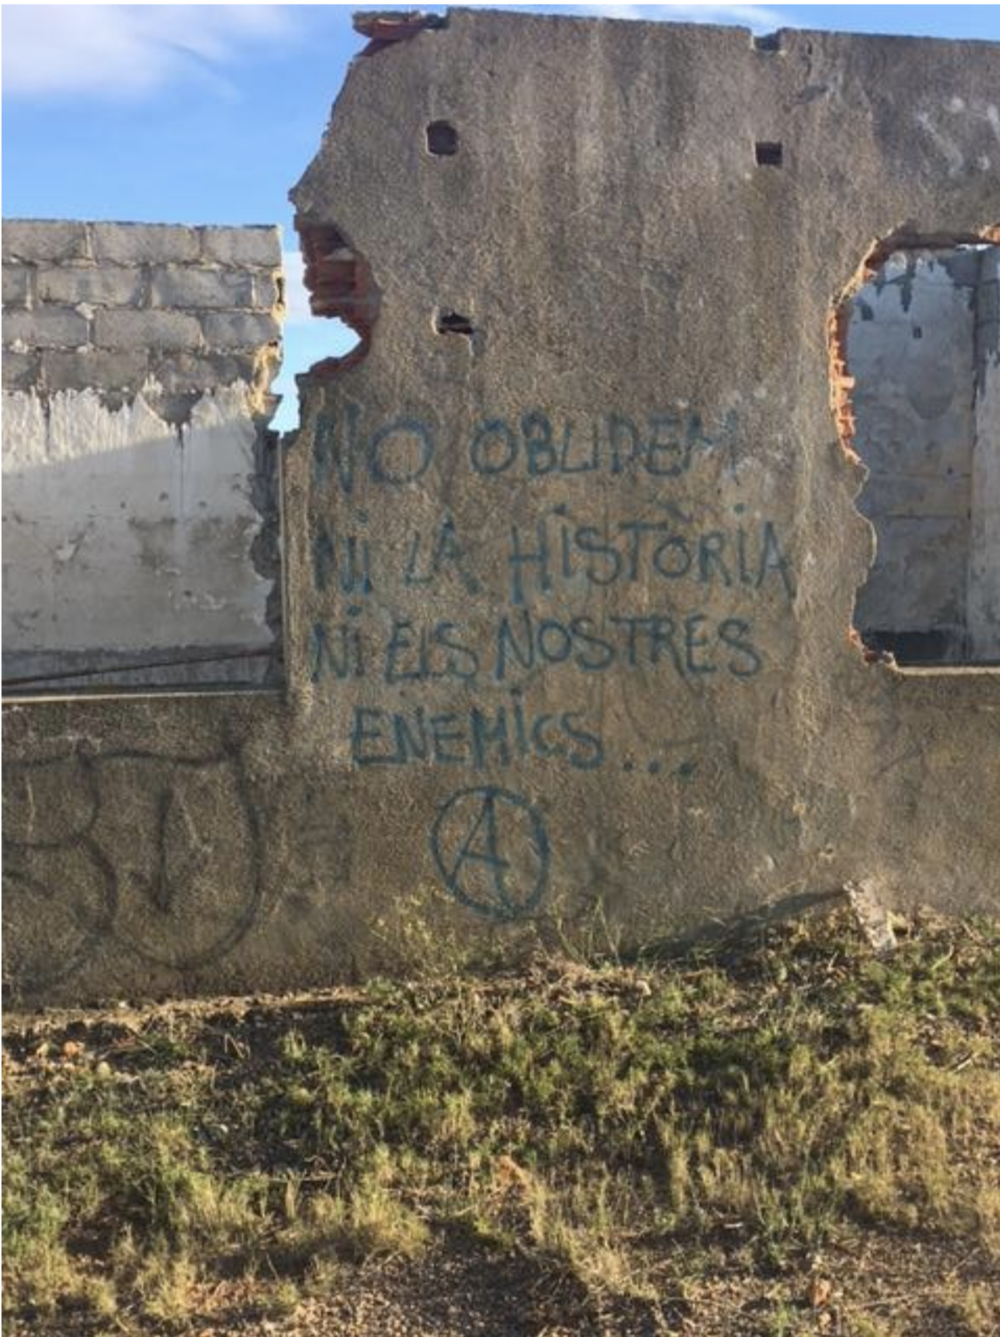 'No oblidiem ni la història ni les nostres enemics…'  'Forget neither the history or our enemies'